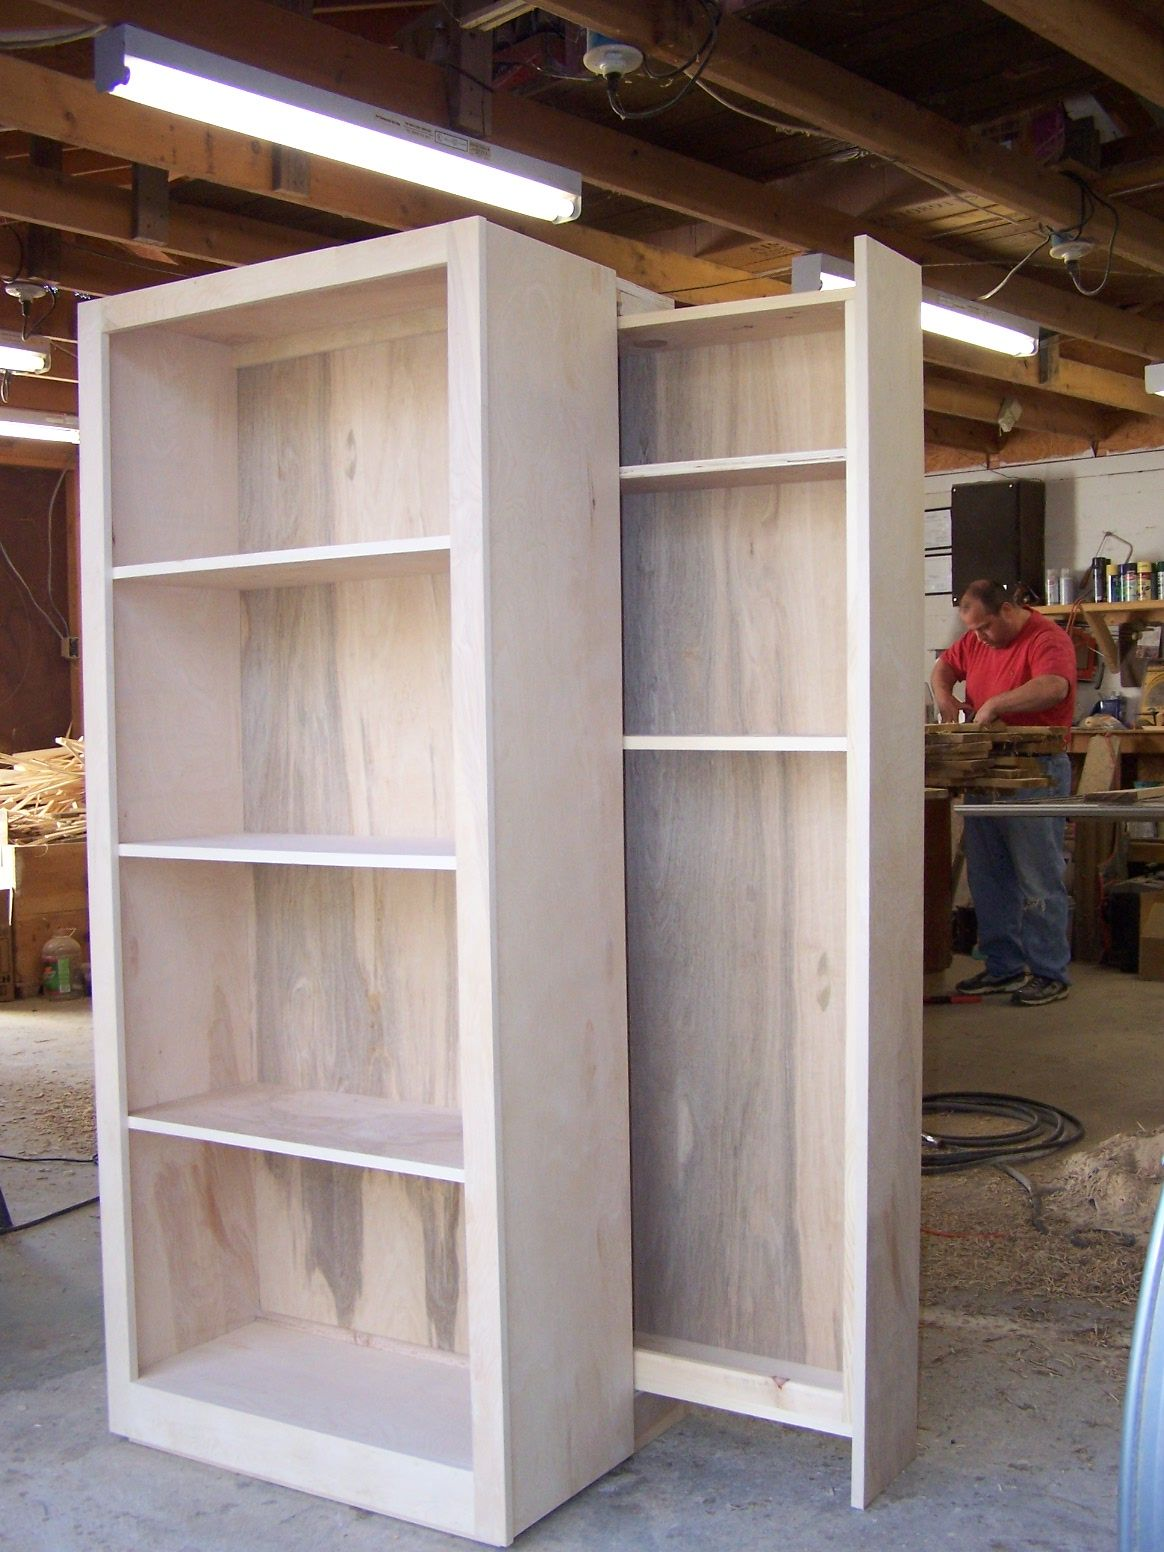 Birch Bookcase Whith Hidden Gun Rack In Back Wood